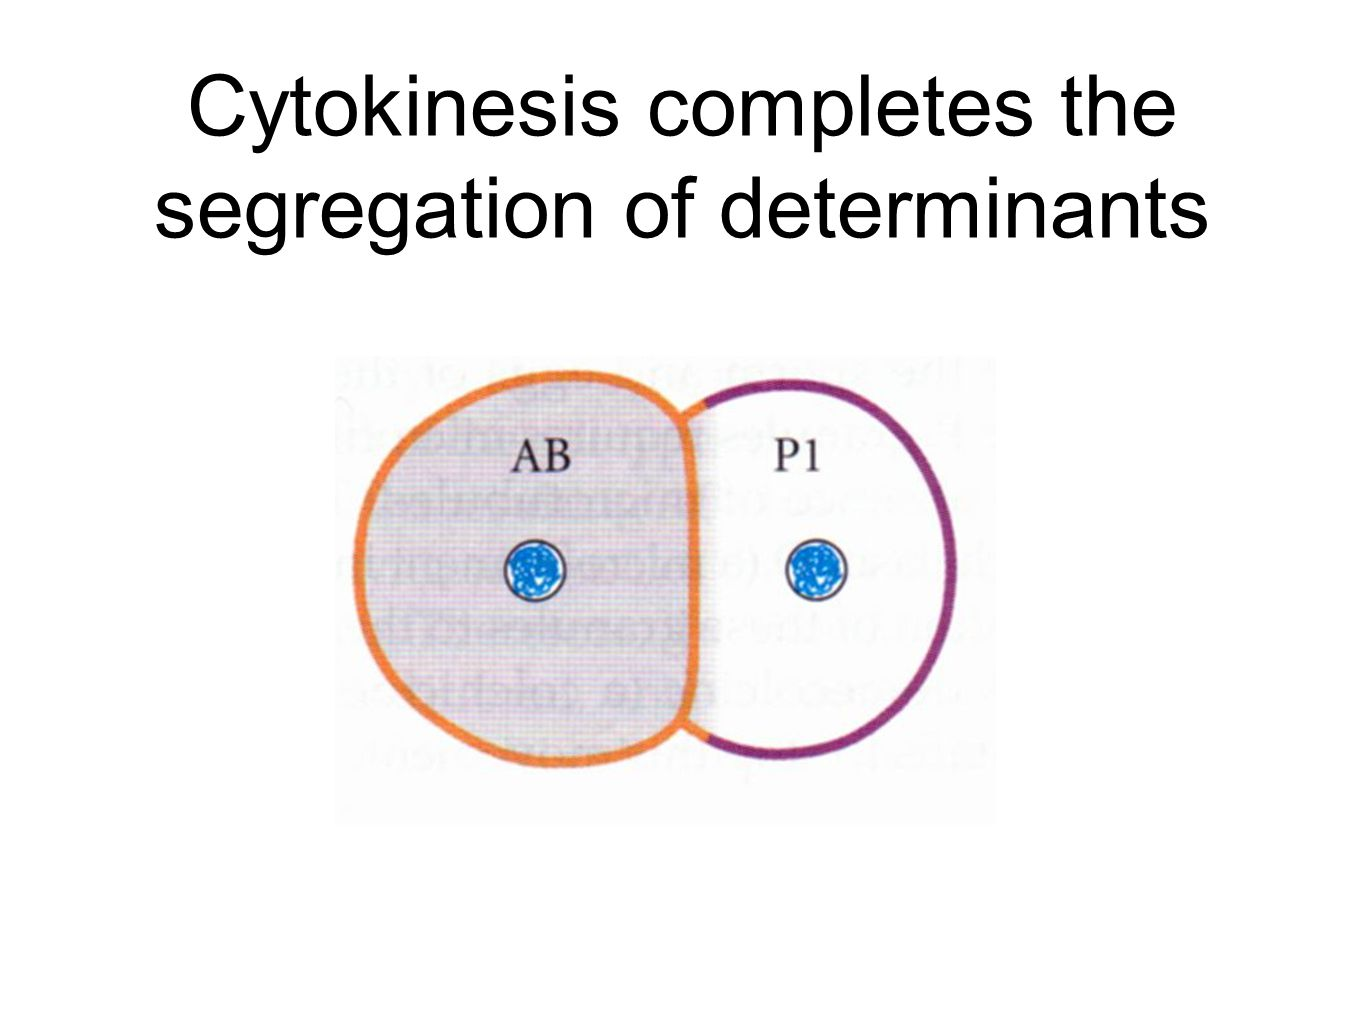 Cytokinesis completes the segregation of determinants